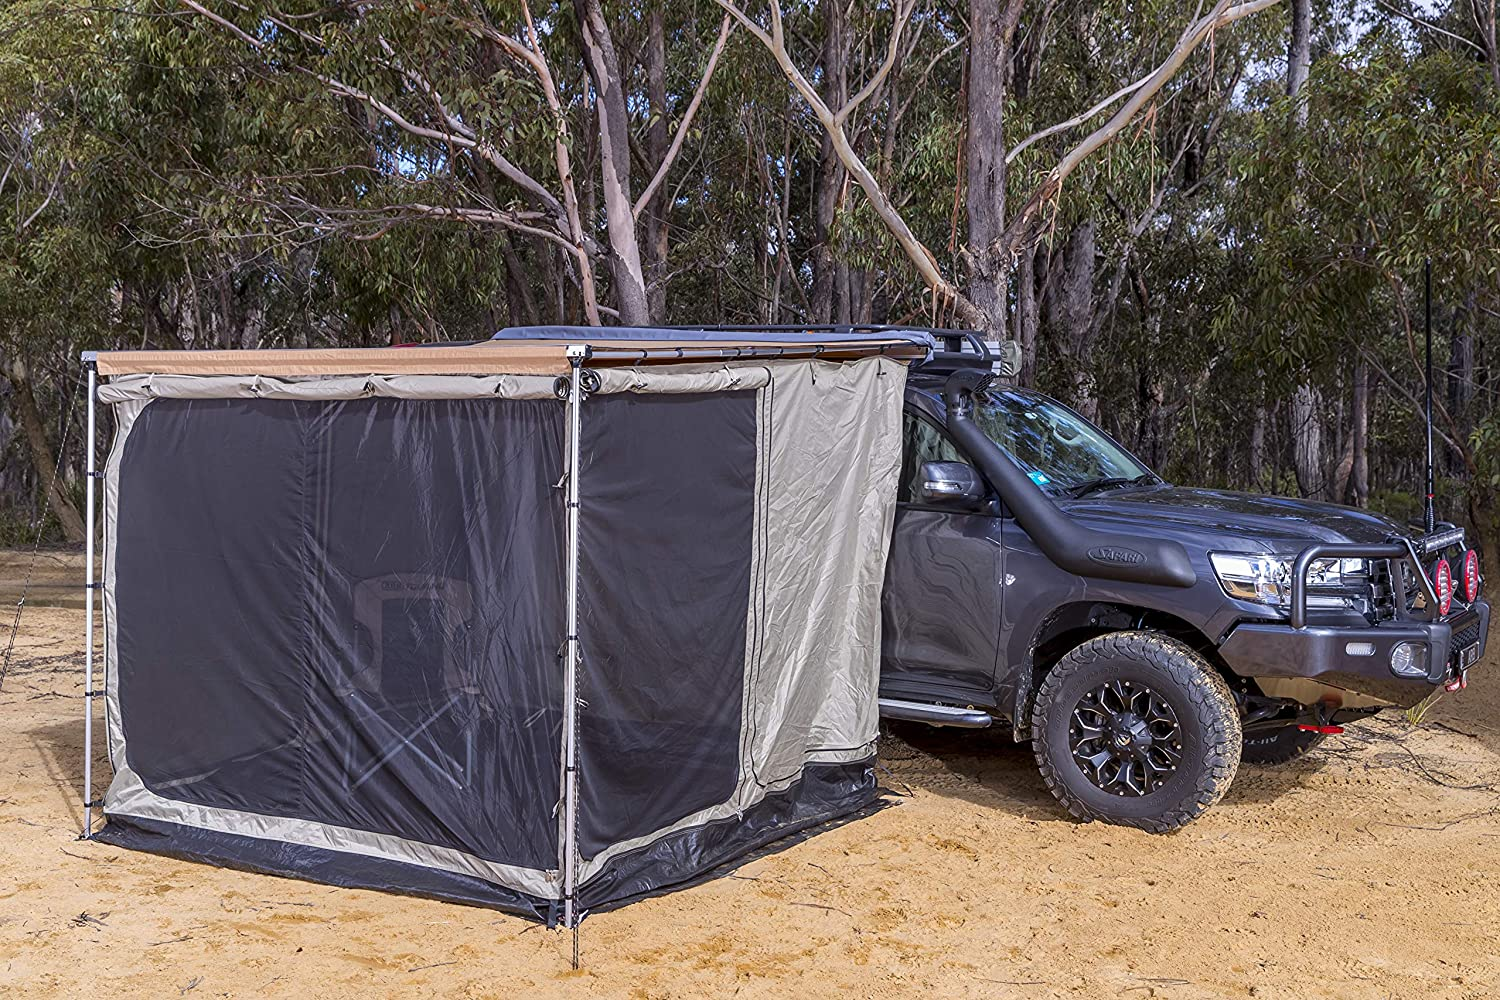 ARB Awning Room for Car Tent Camping